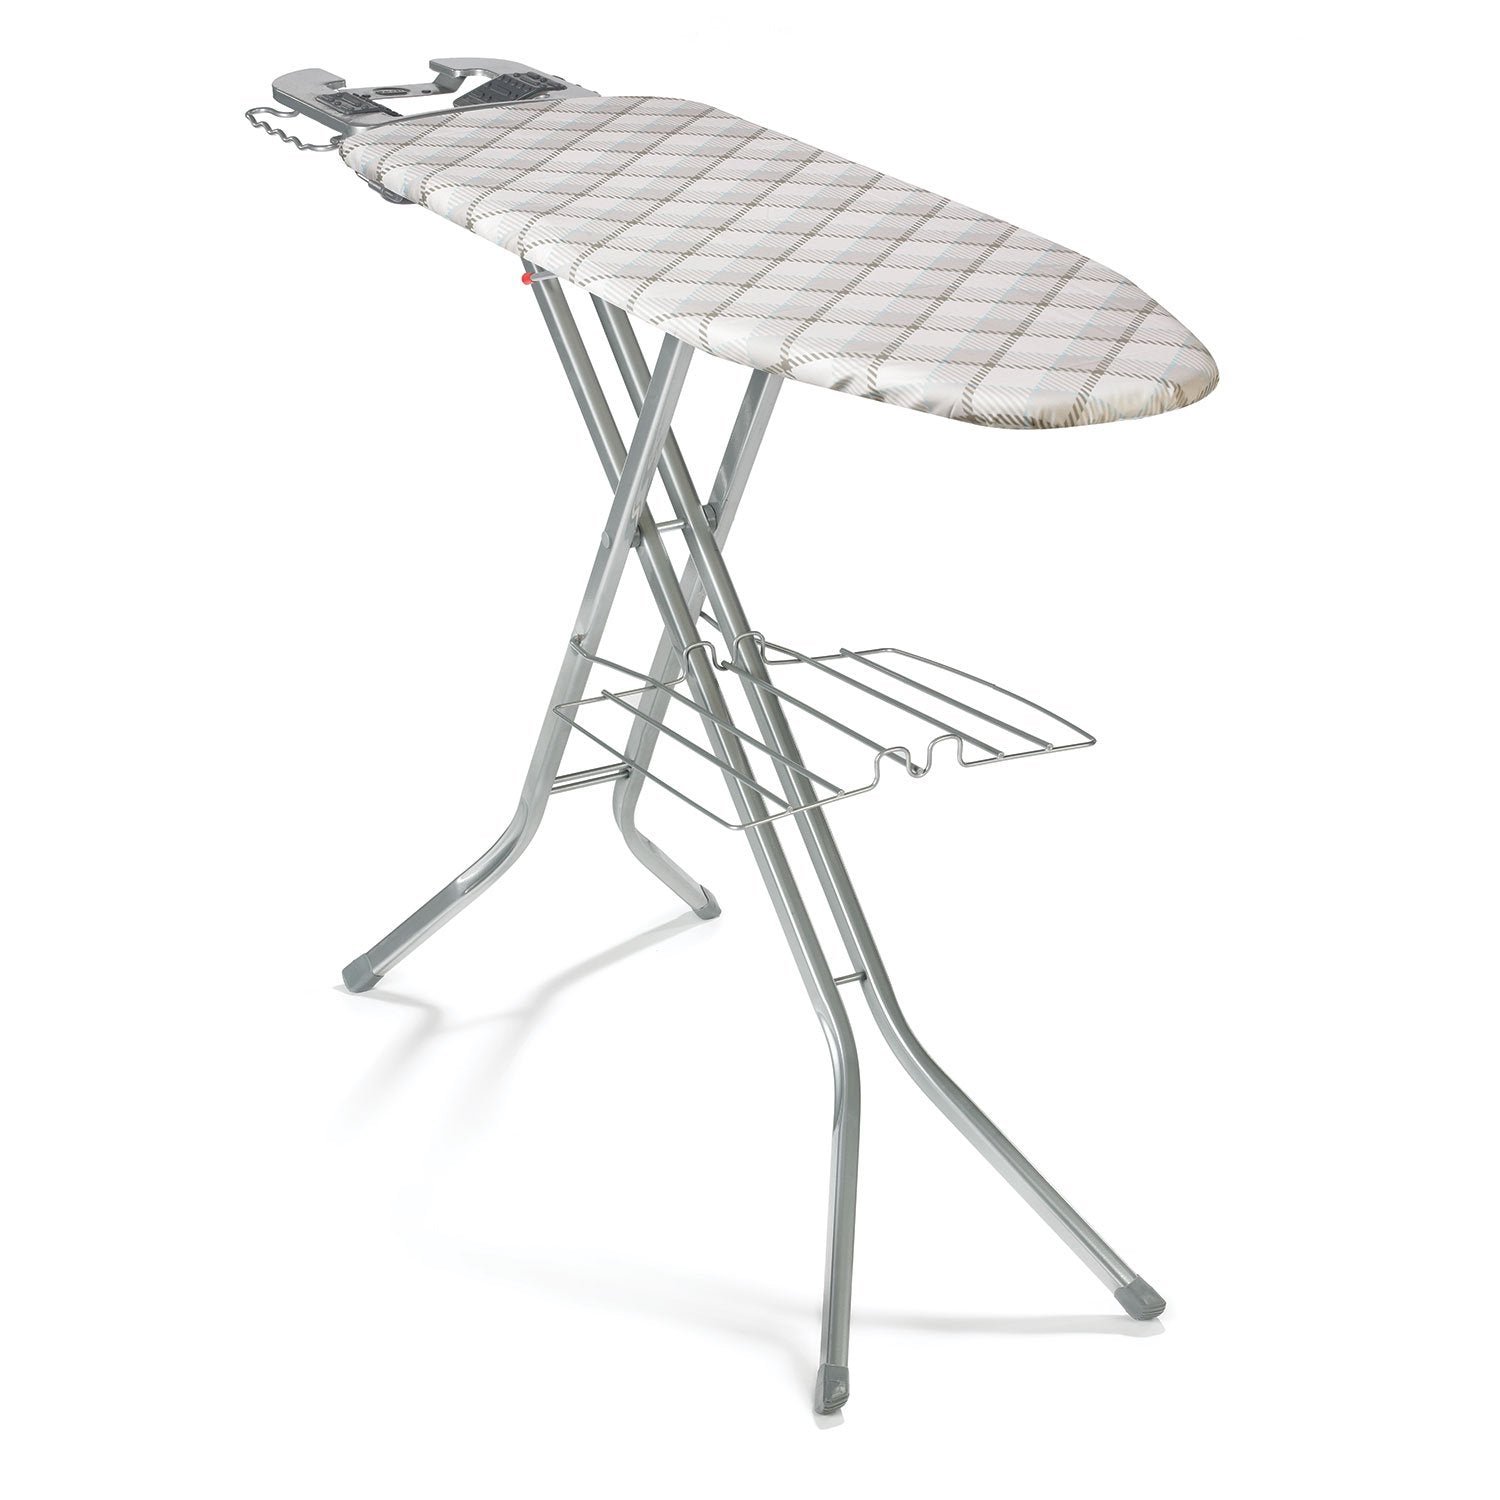 Deluxe Ironing Station - Set of 4 Feet